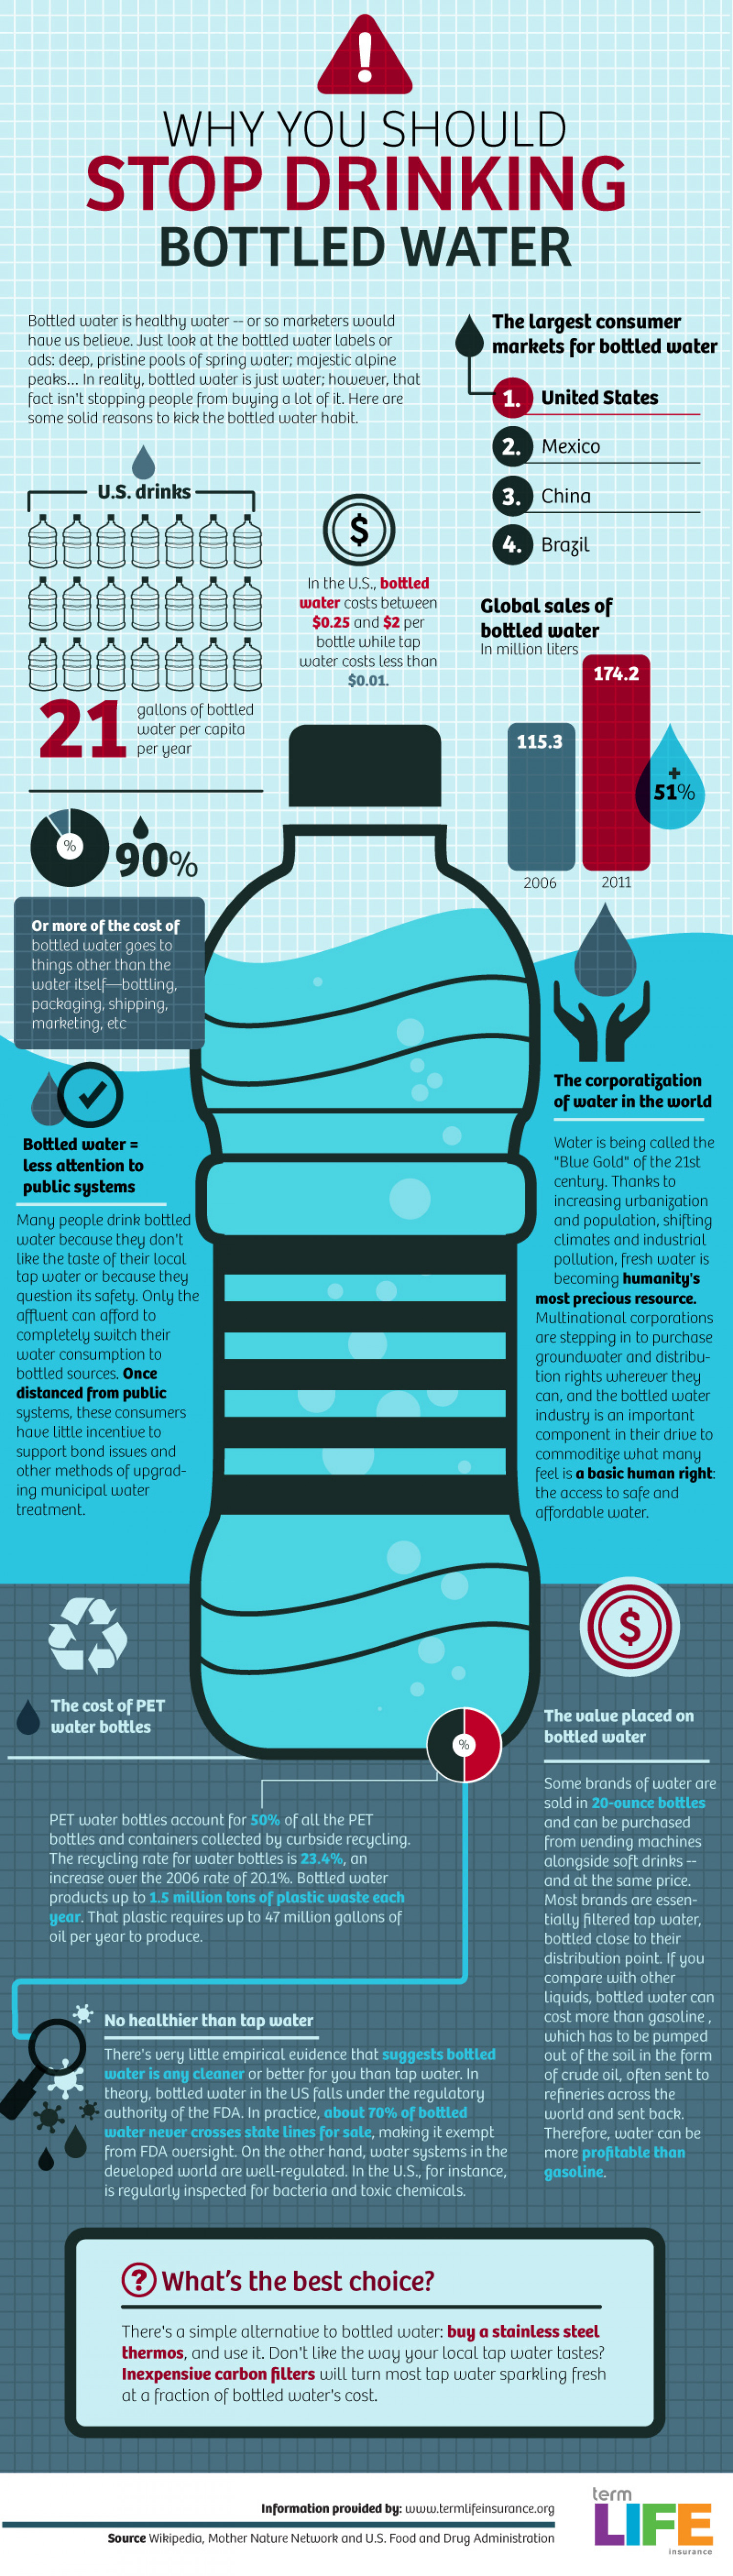 Why You Should Stop Drinking Bottled Water Infographic